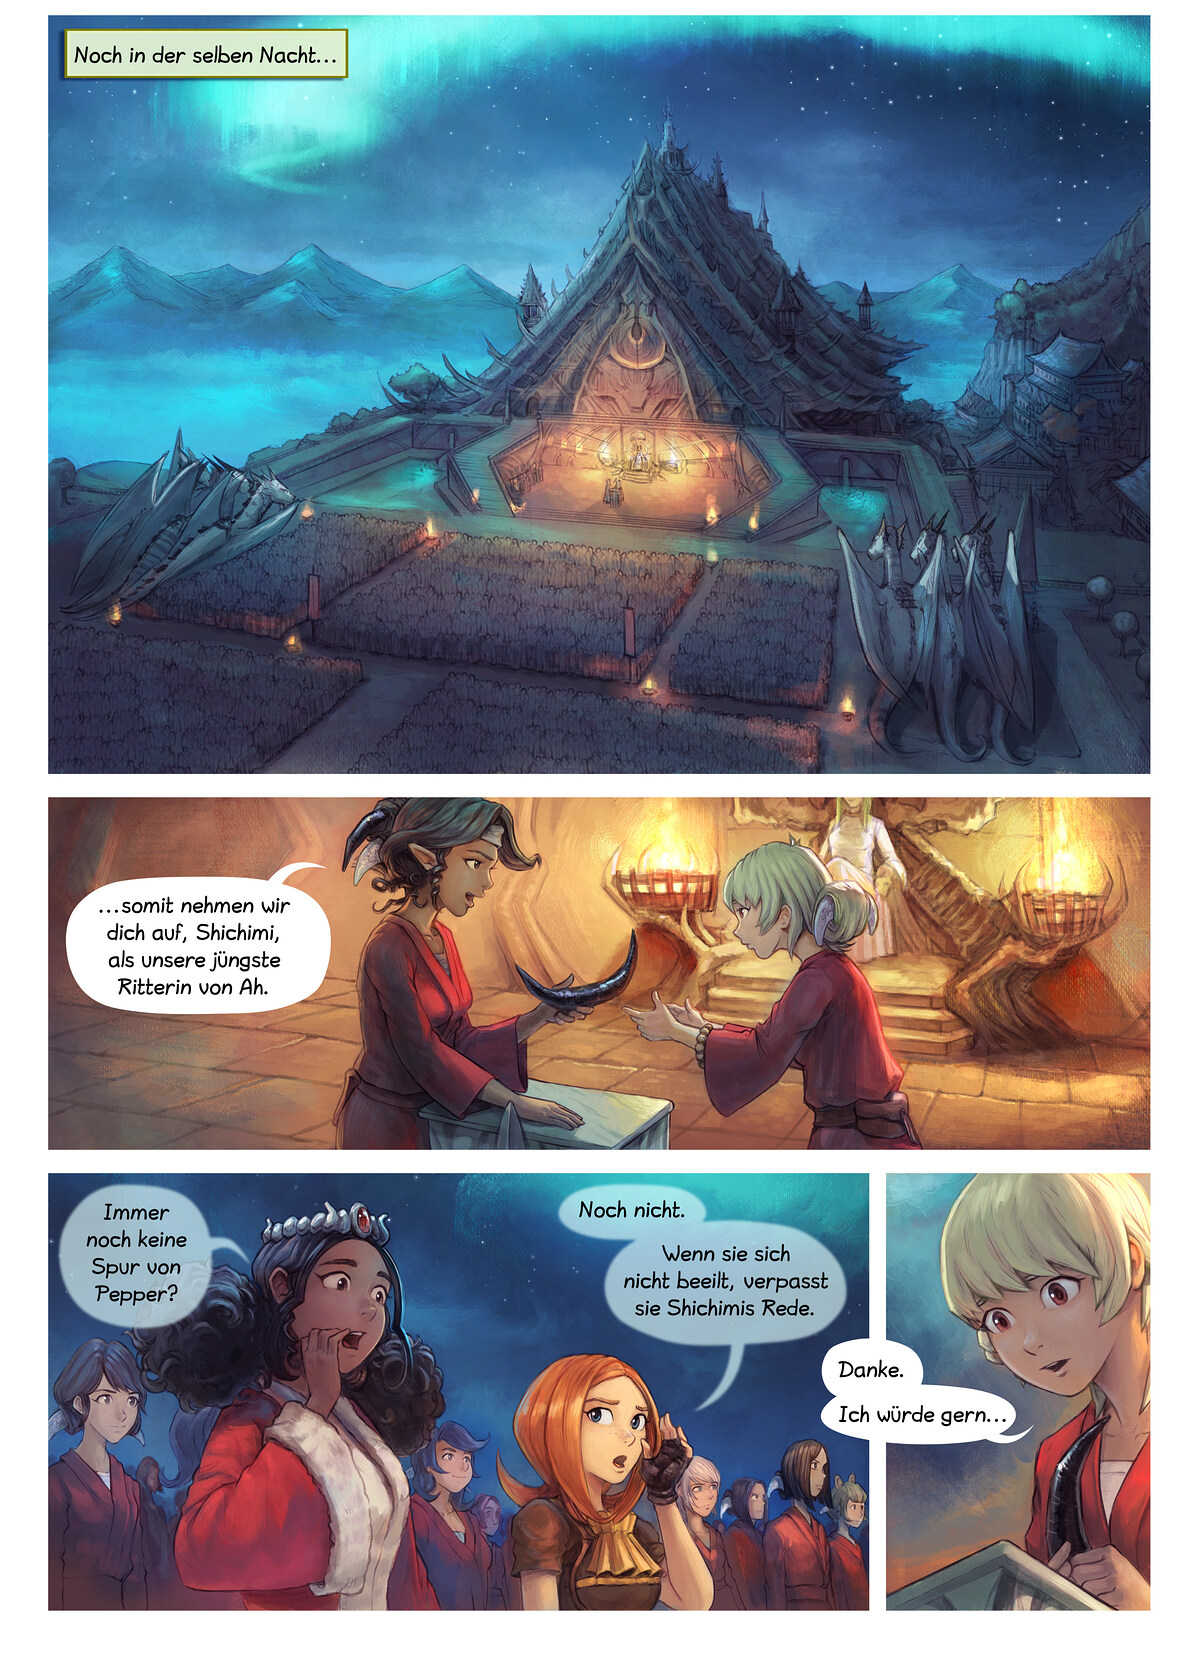 Episode 34: Shichimis Abschluss, Page 1